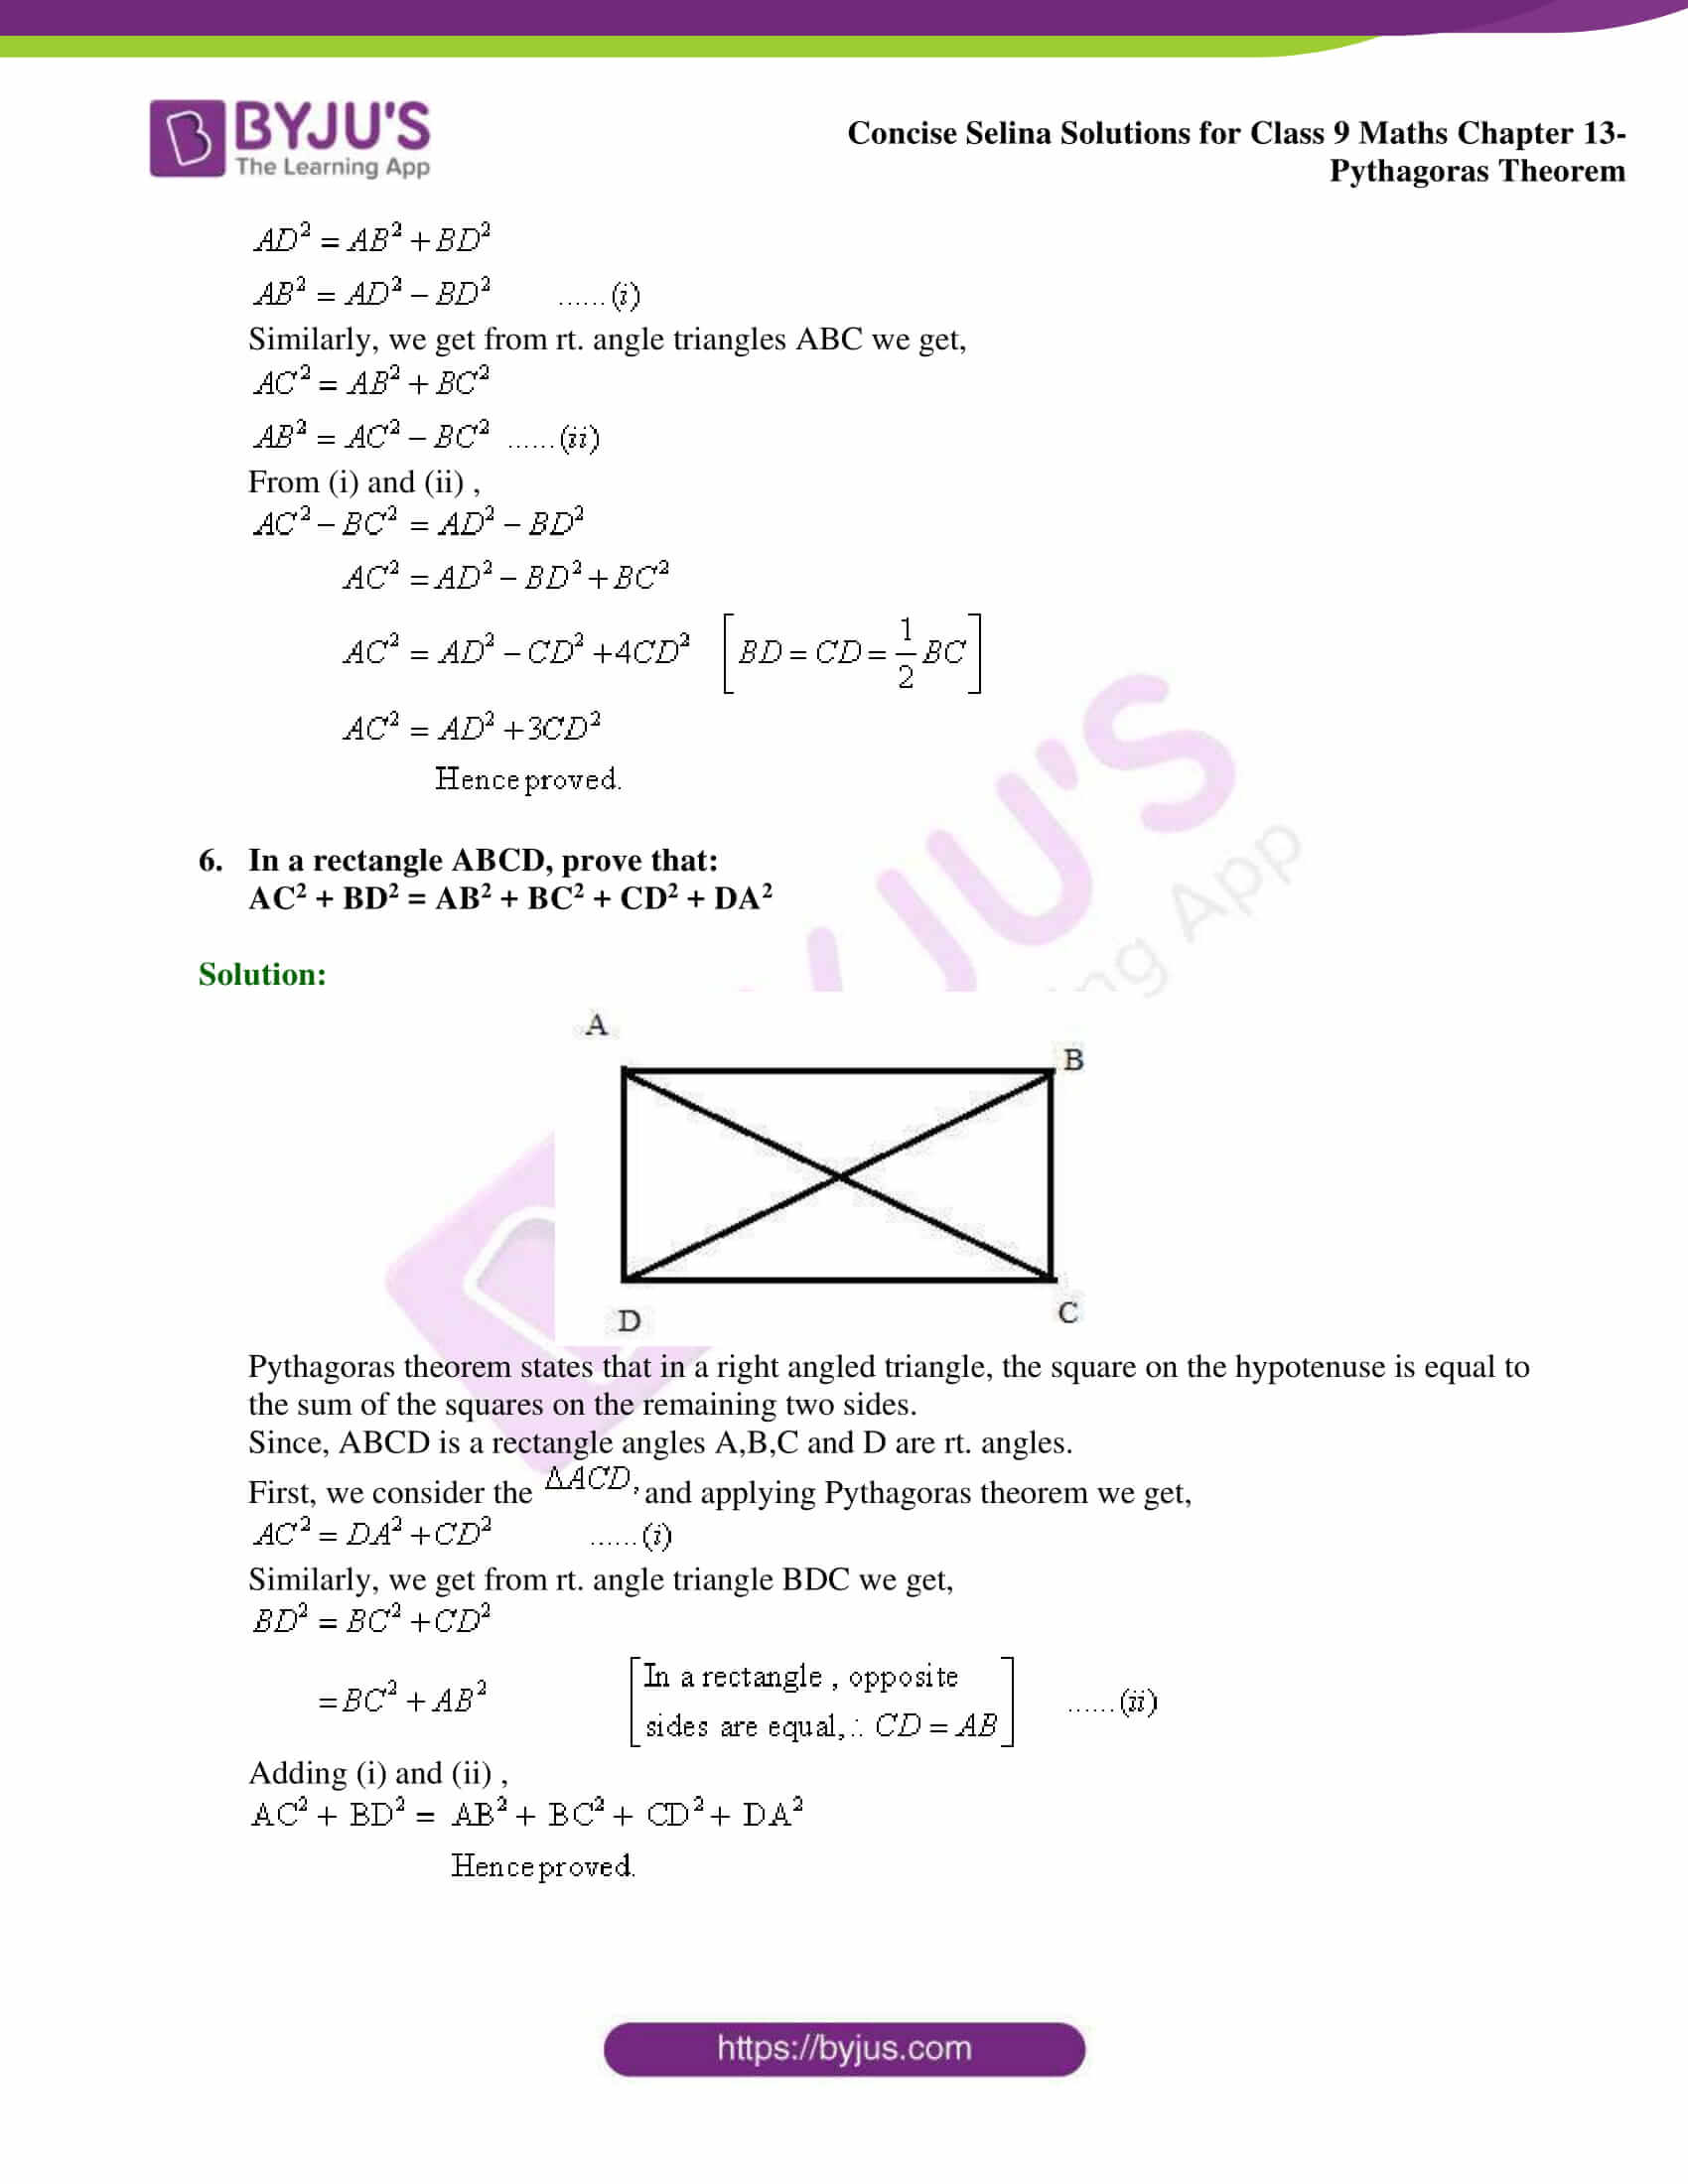 selina Solutions for Class 9 Maths Chapter 13 part 15